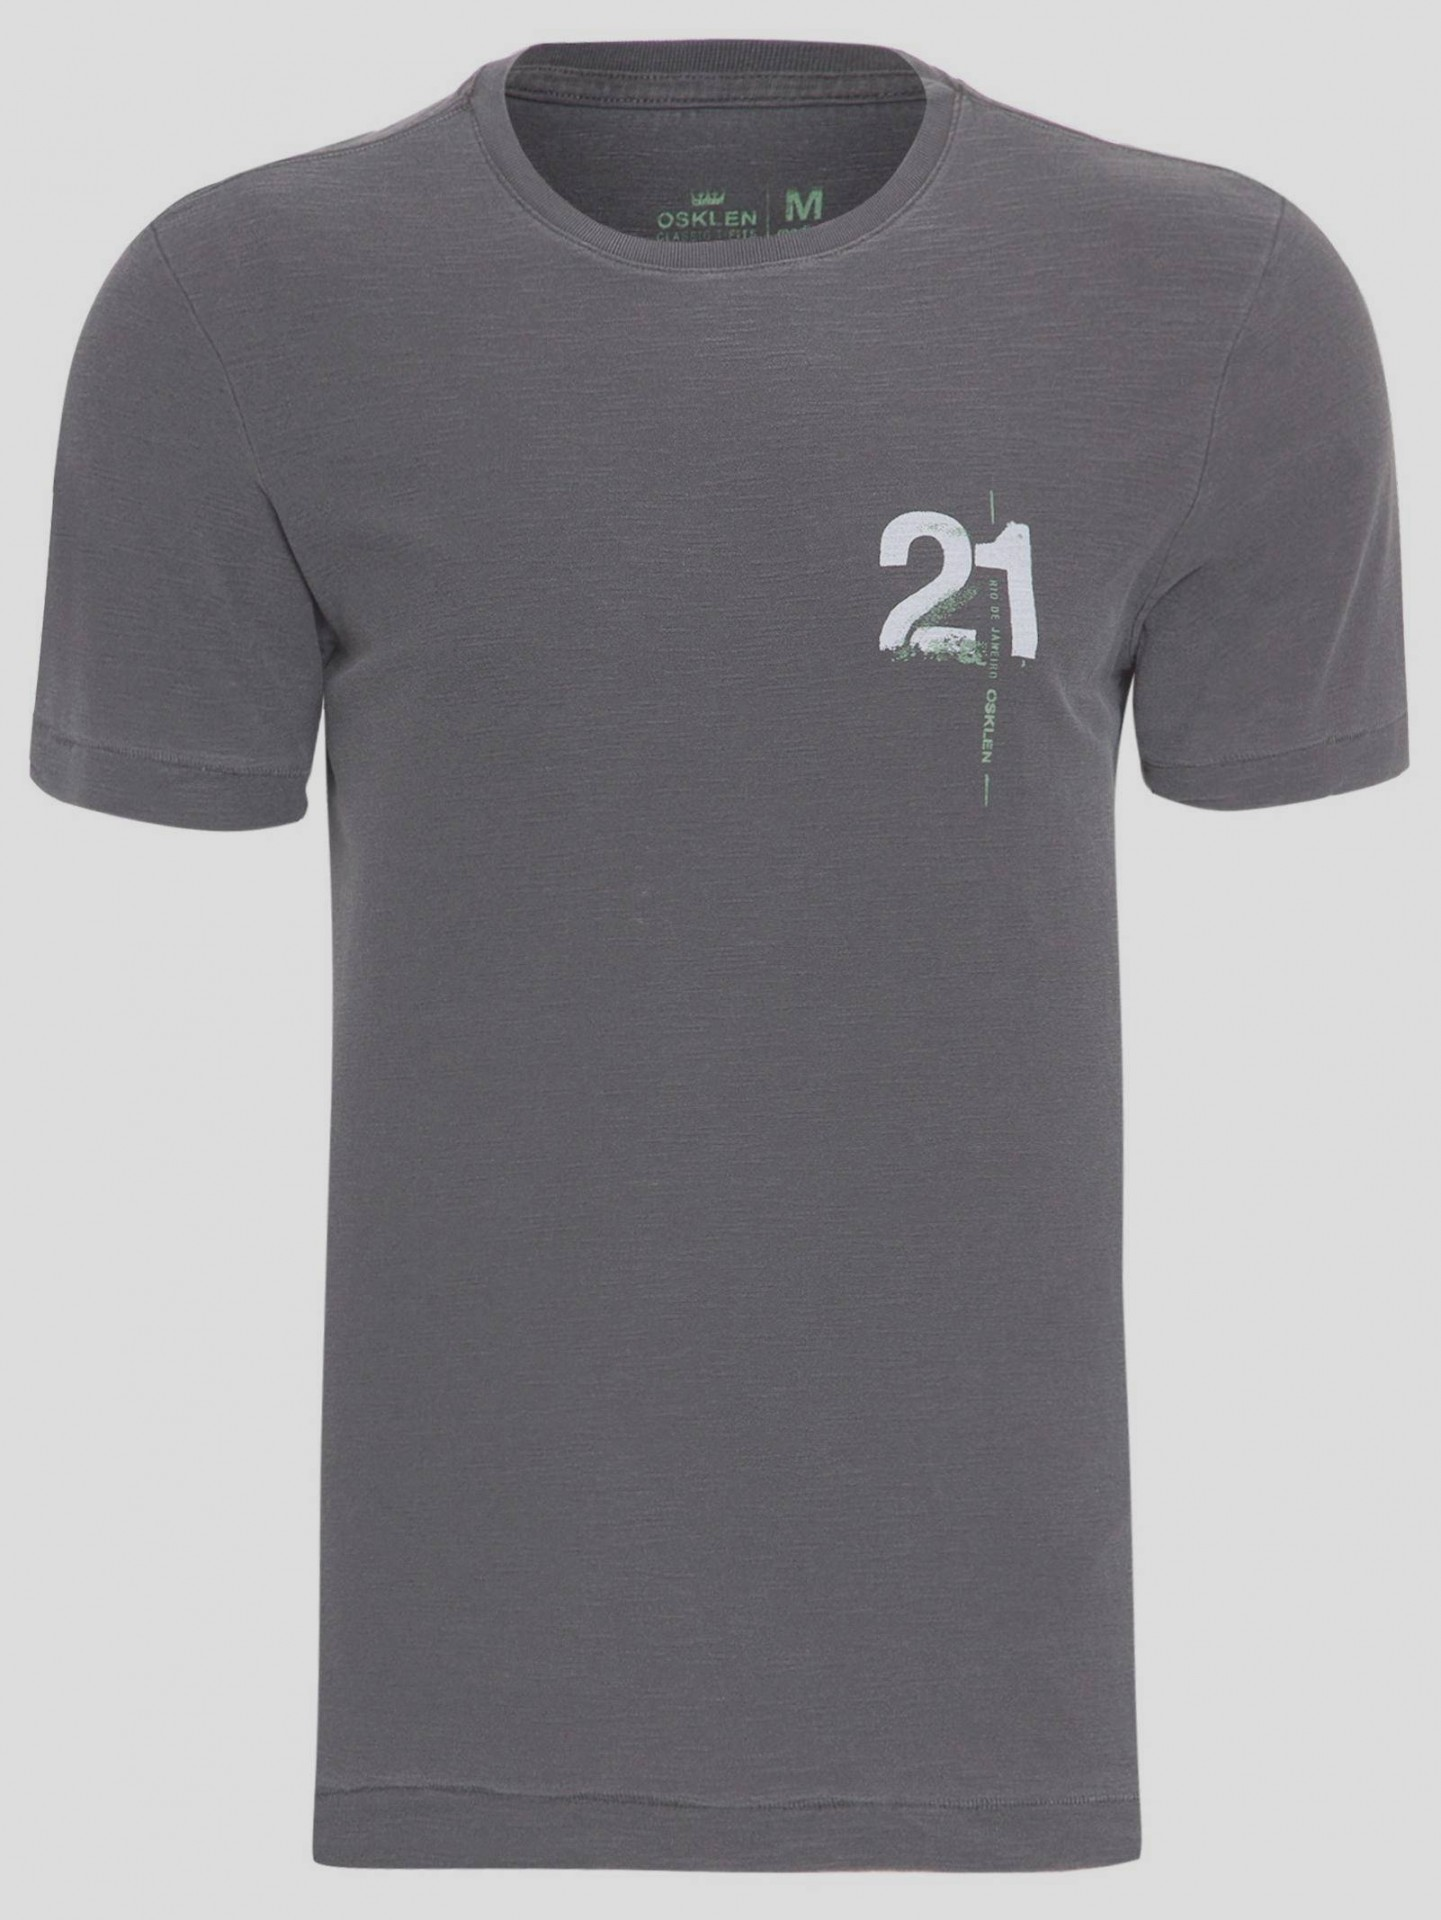 T-SHIRT ROUGH A21 OSKLEN